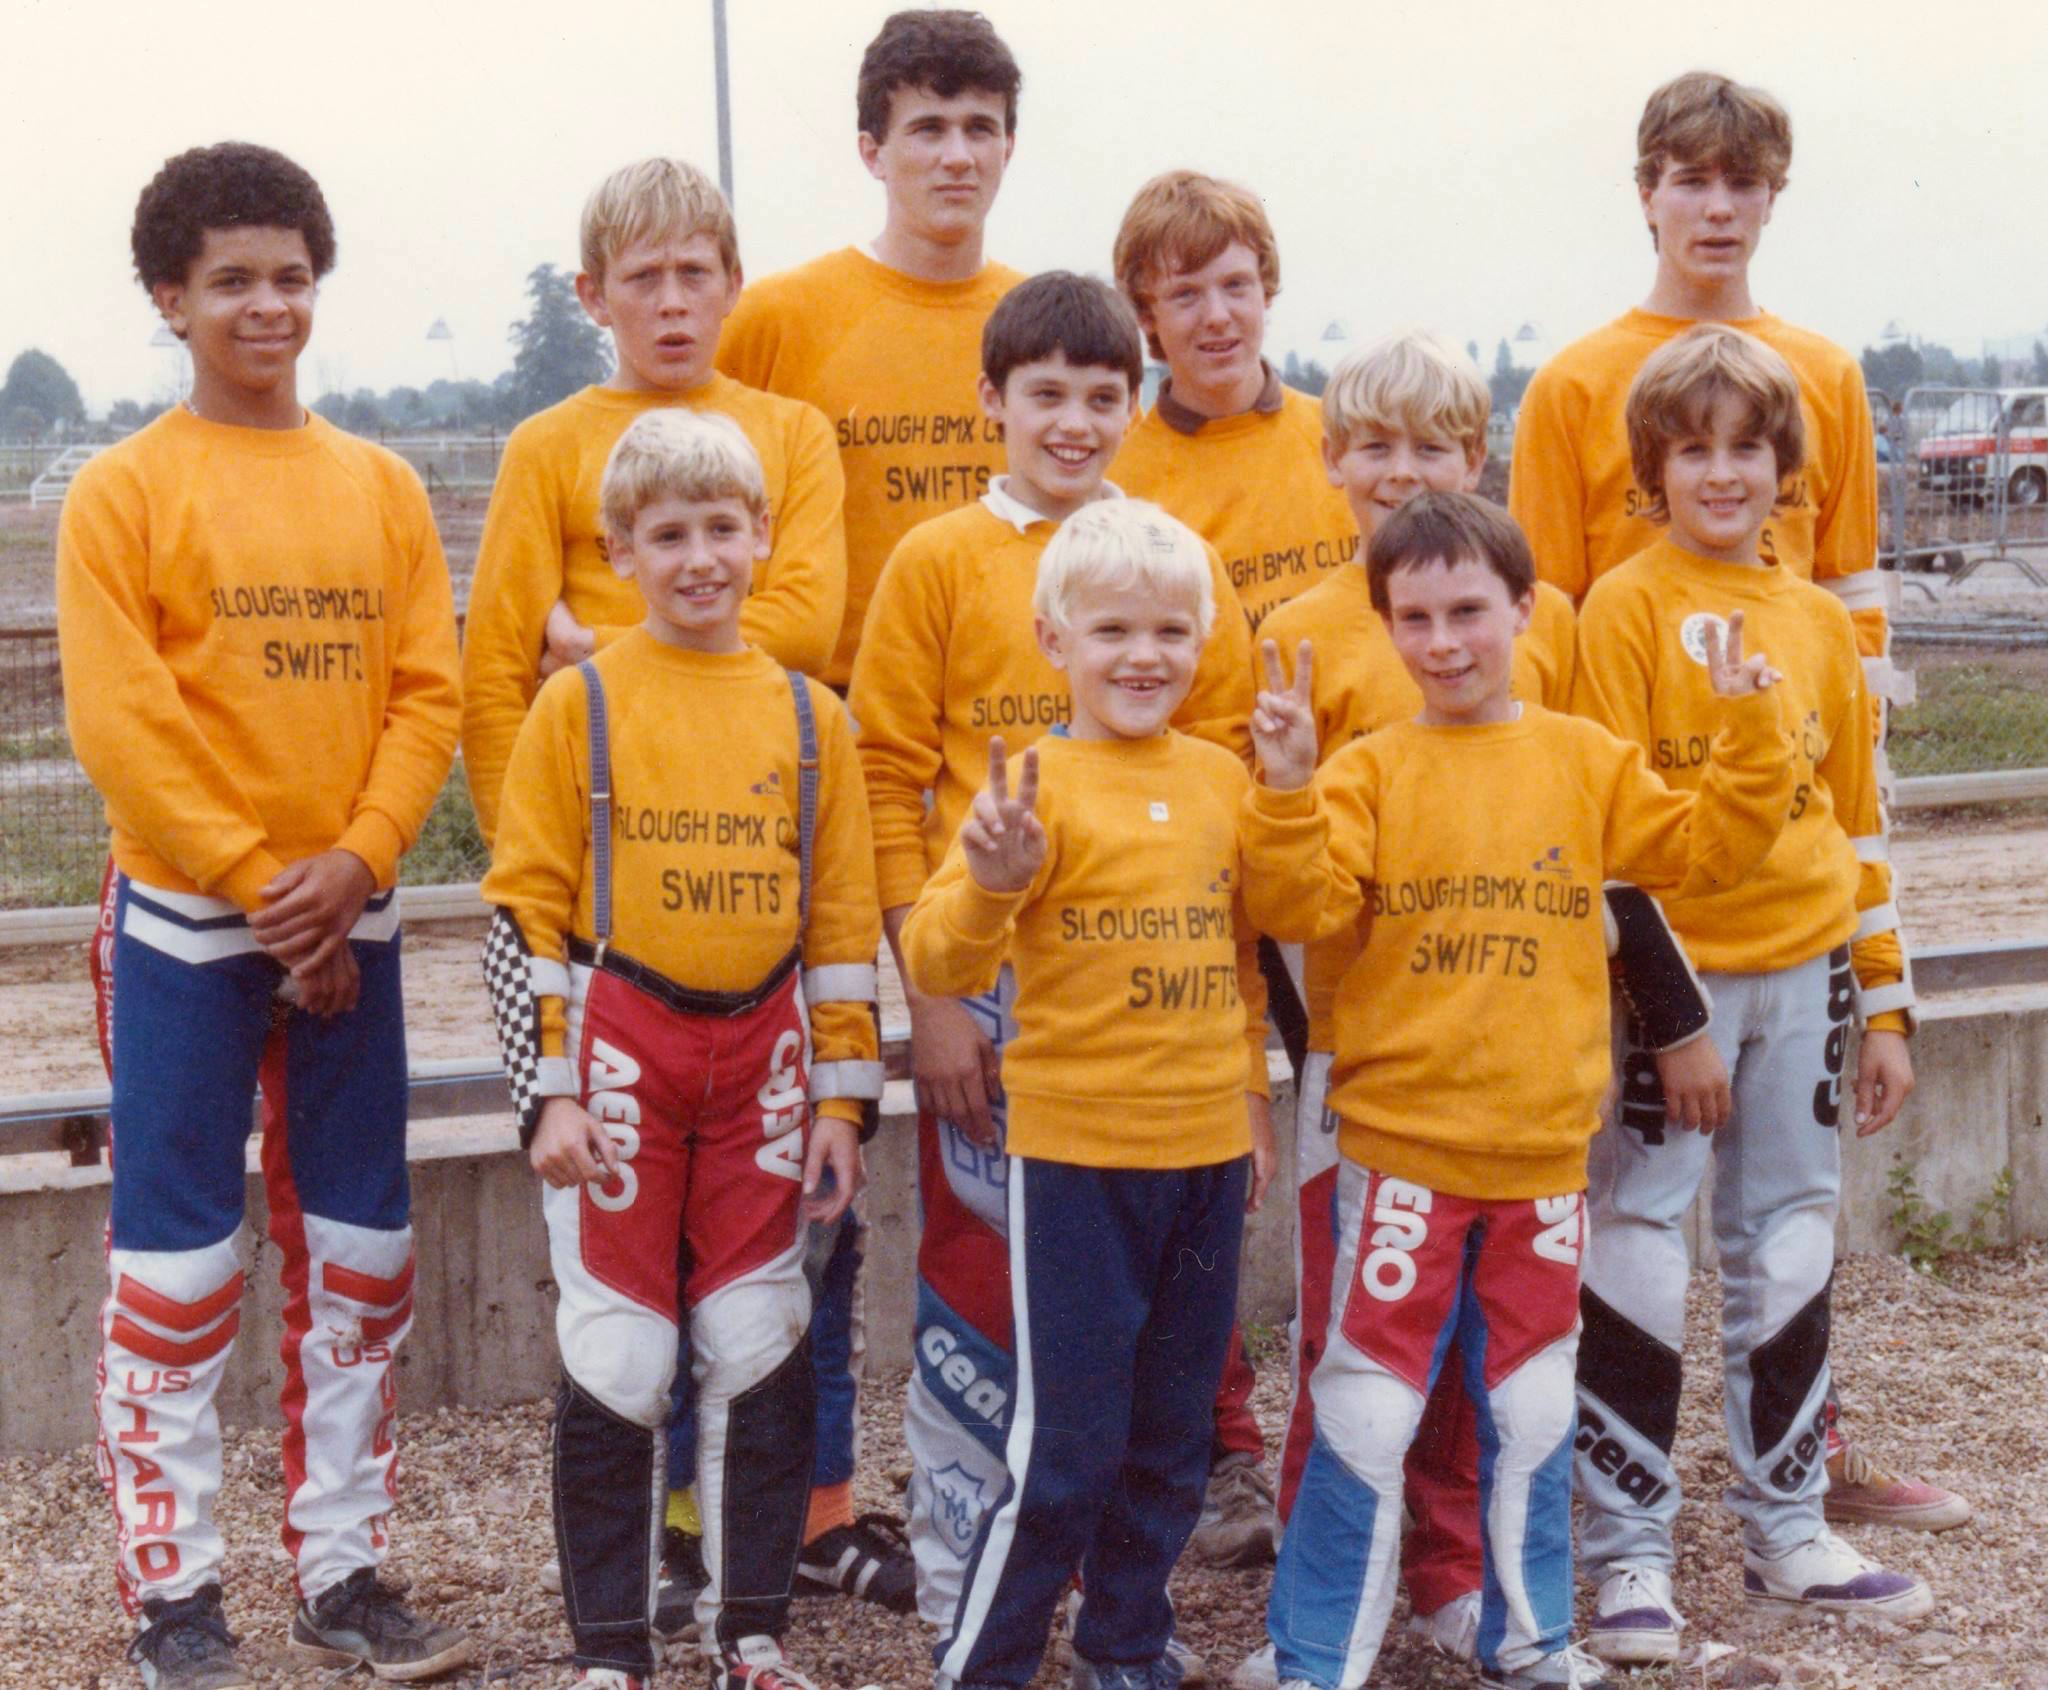 """The original """"Slough Swifts""""?From left to right:James Chapman, Stuart Crawford, Robert Twiggs, Andy Taylor, Ashley Bishop, Gary Cross, Chris Carter {back row, 2nd from right}himself, Grant Melville, Alex Buckland, Lyndon Thurgood and Bryan Webb."""